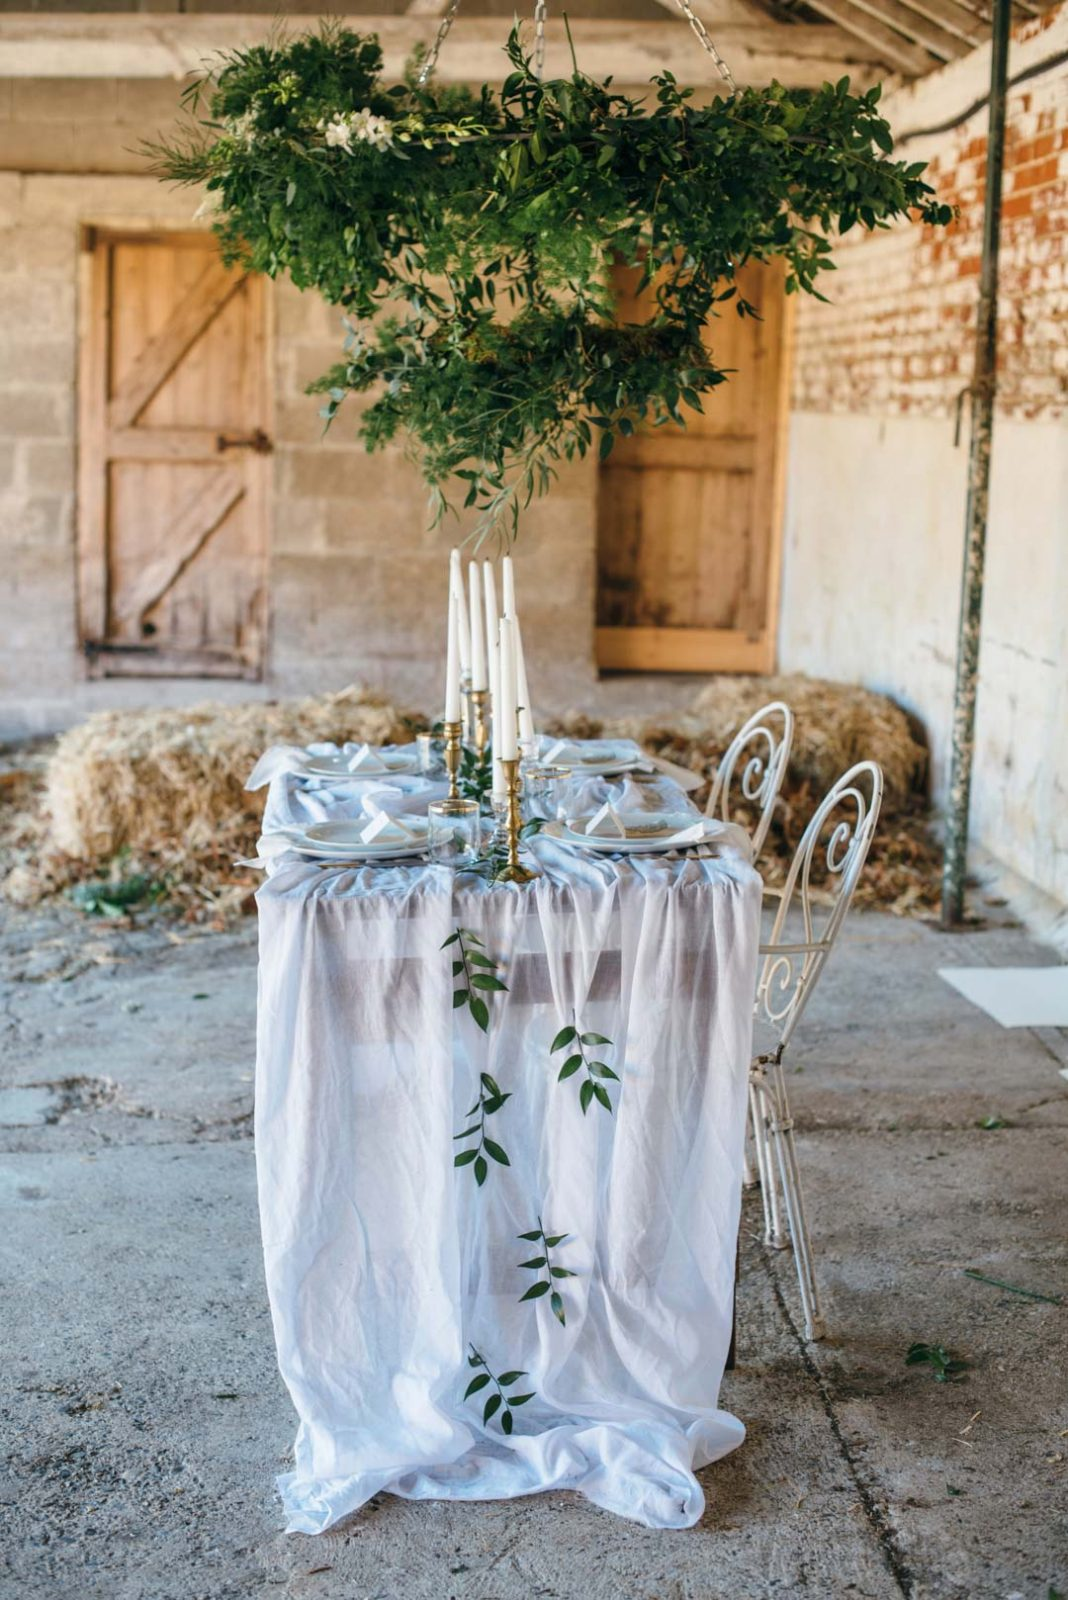 BethMoseleyPhotography_WhiteonWhite-177FINAL1080px wide-85